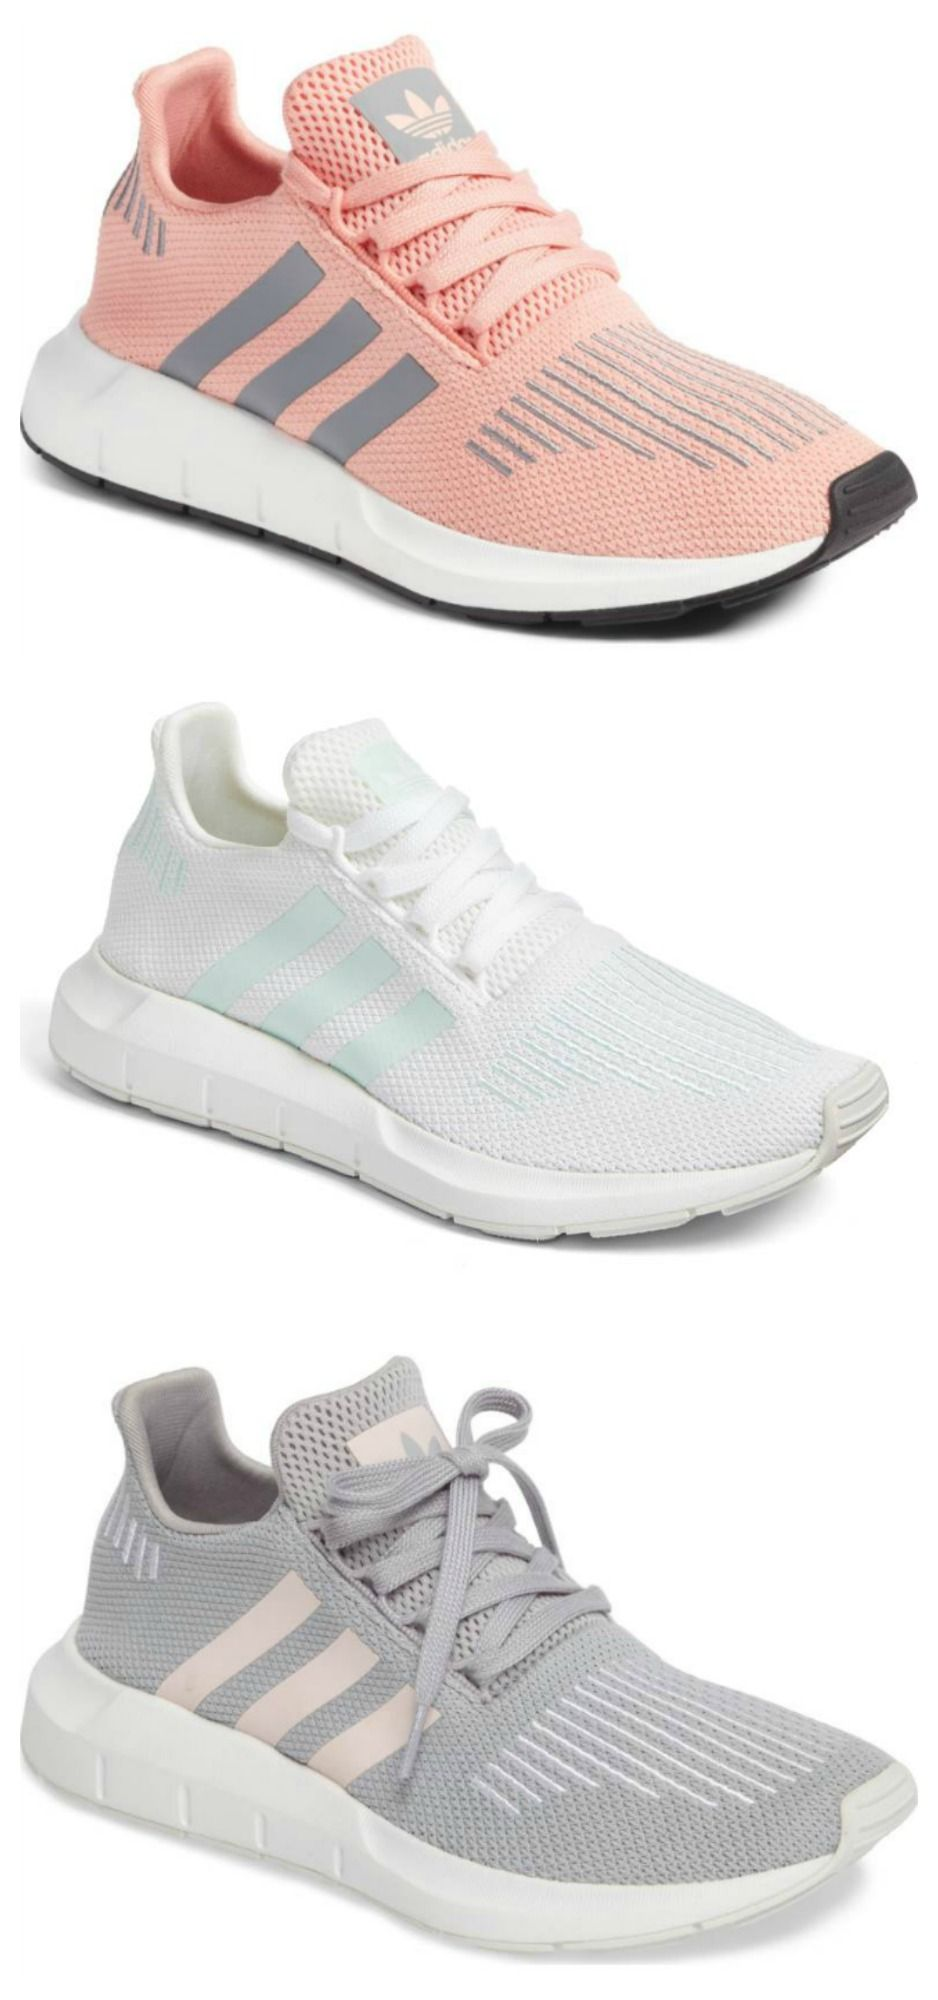 Adidas Swift Run Sneakers via Nordstrom | sneaker, tennis shoe, shoes,  footwear,